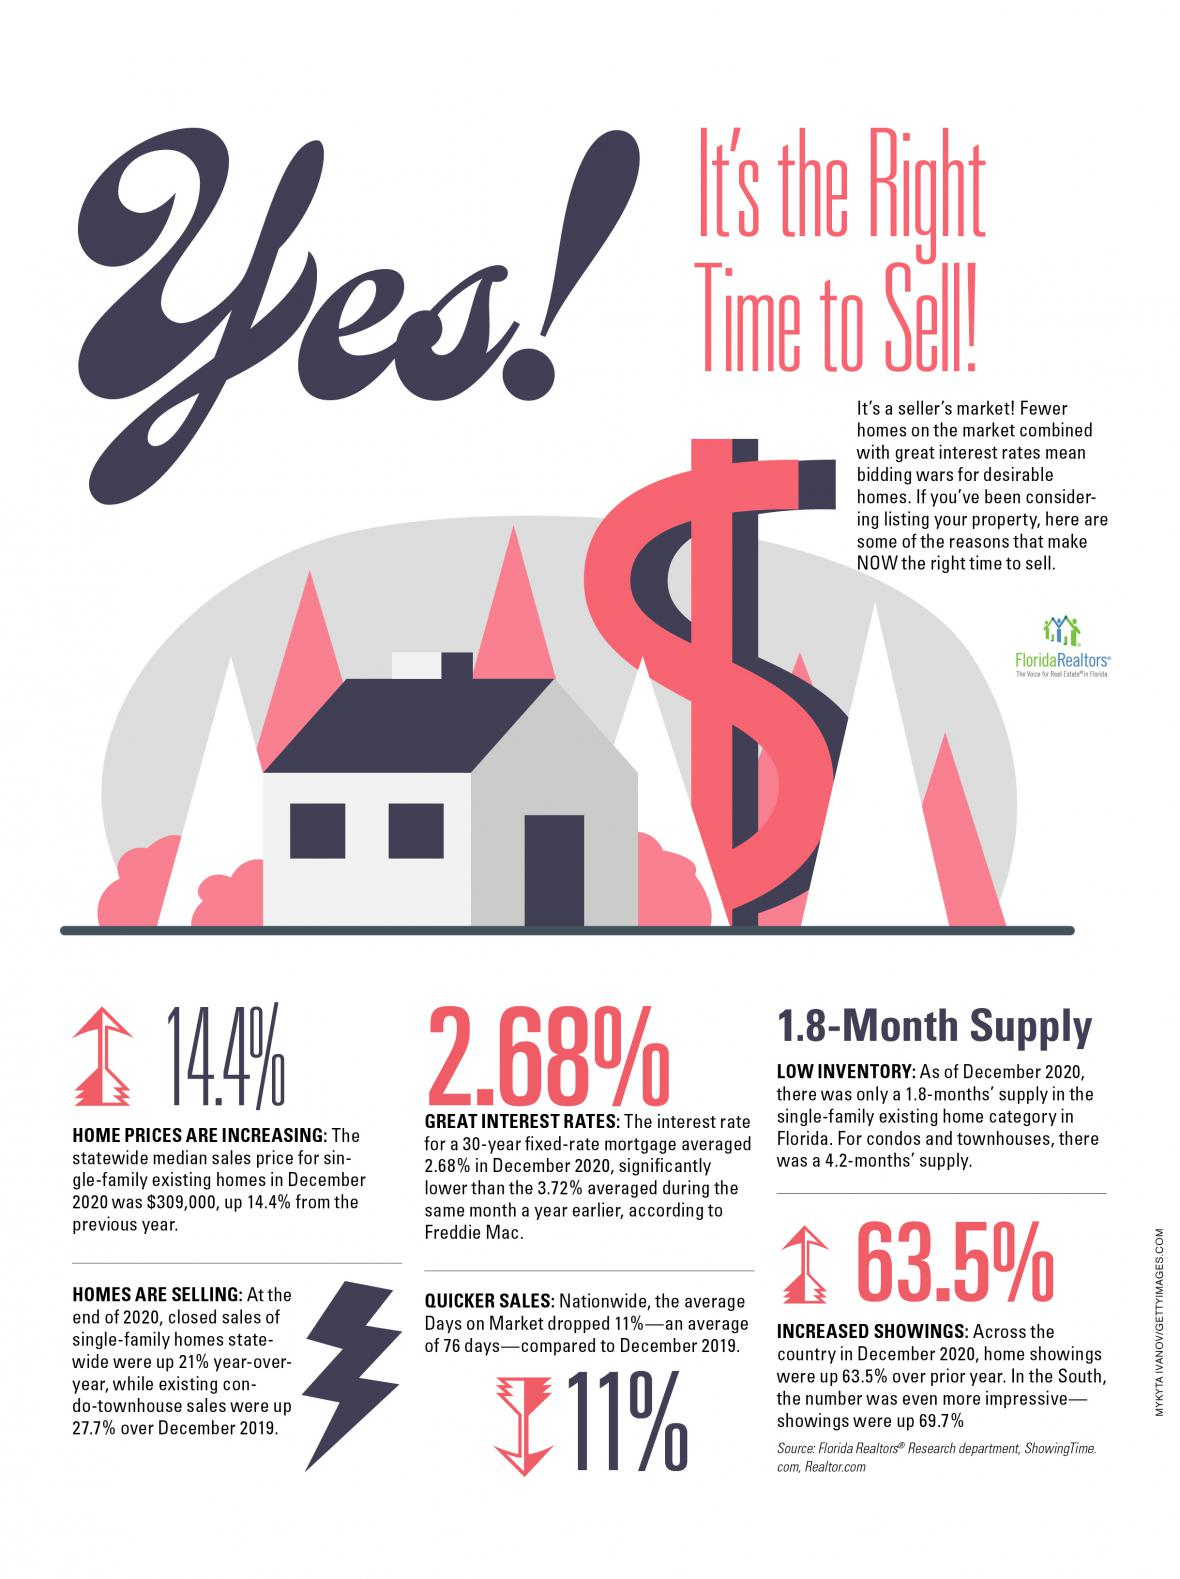 Yes, It's the right time to sell infographic